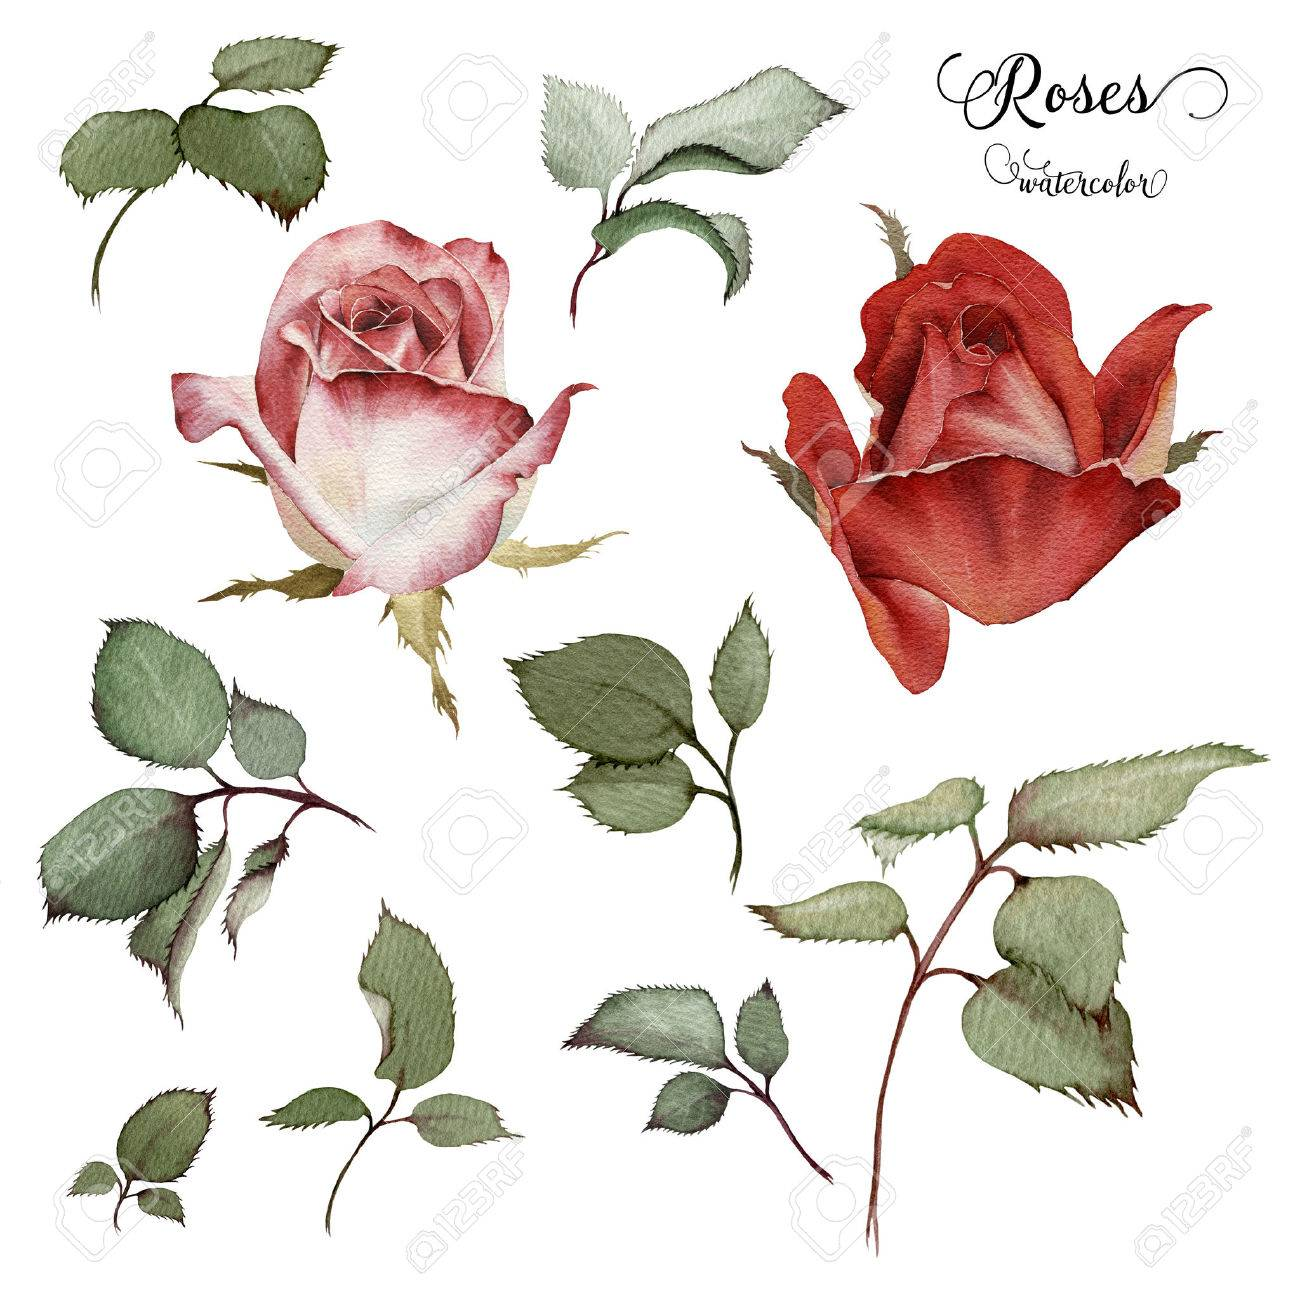 rose flower images u0026 stock pictures royalty free rose flower